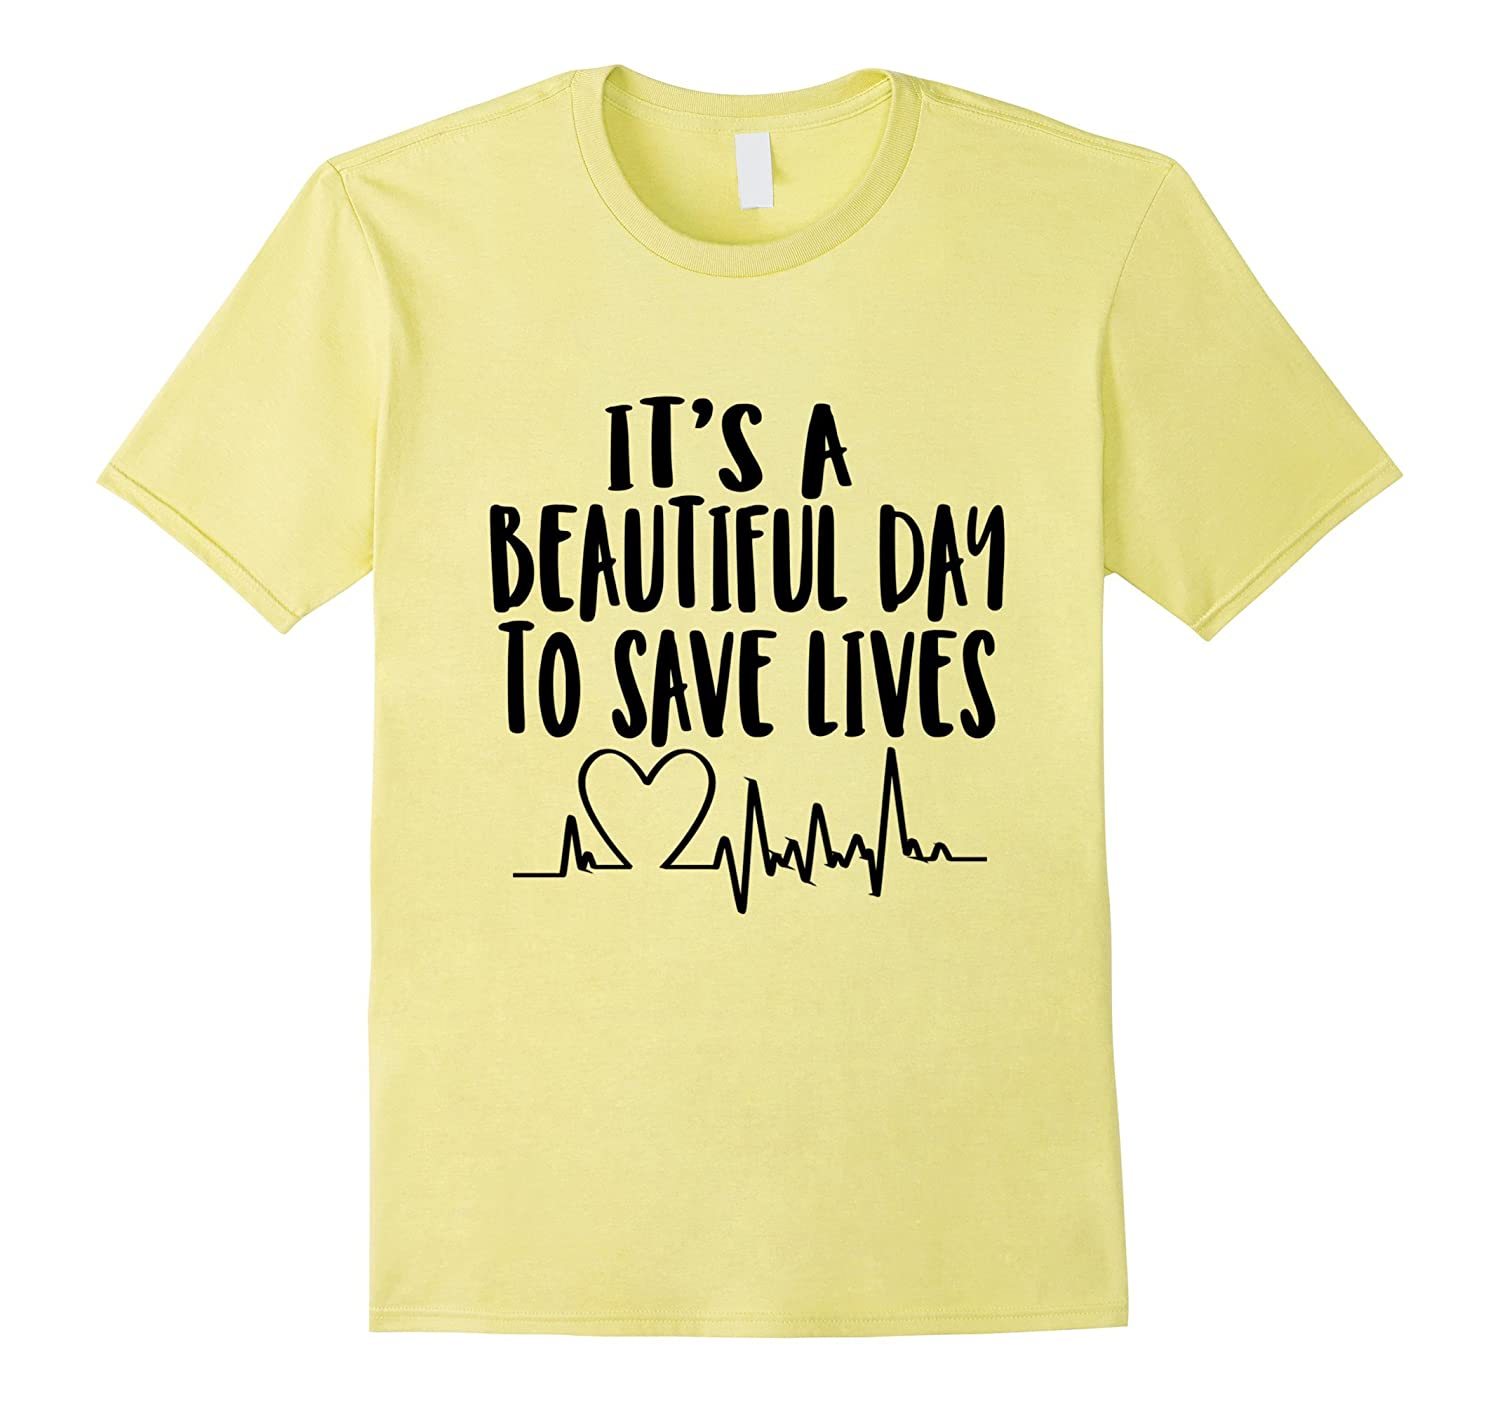 c35ced55 It's a beautiful day to save lives shirt-T-Shirt – Managatee